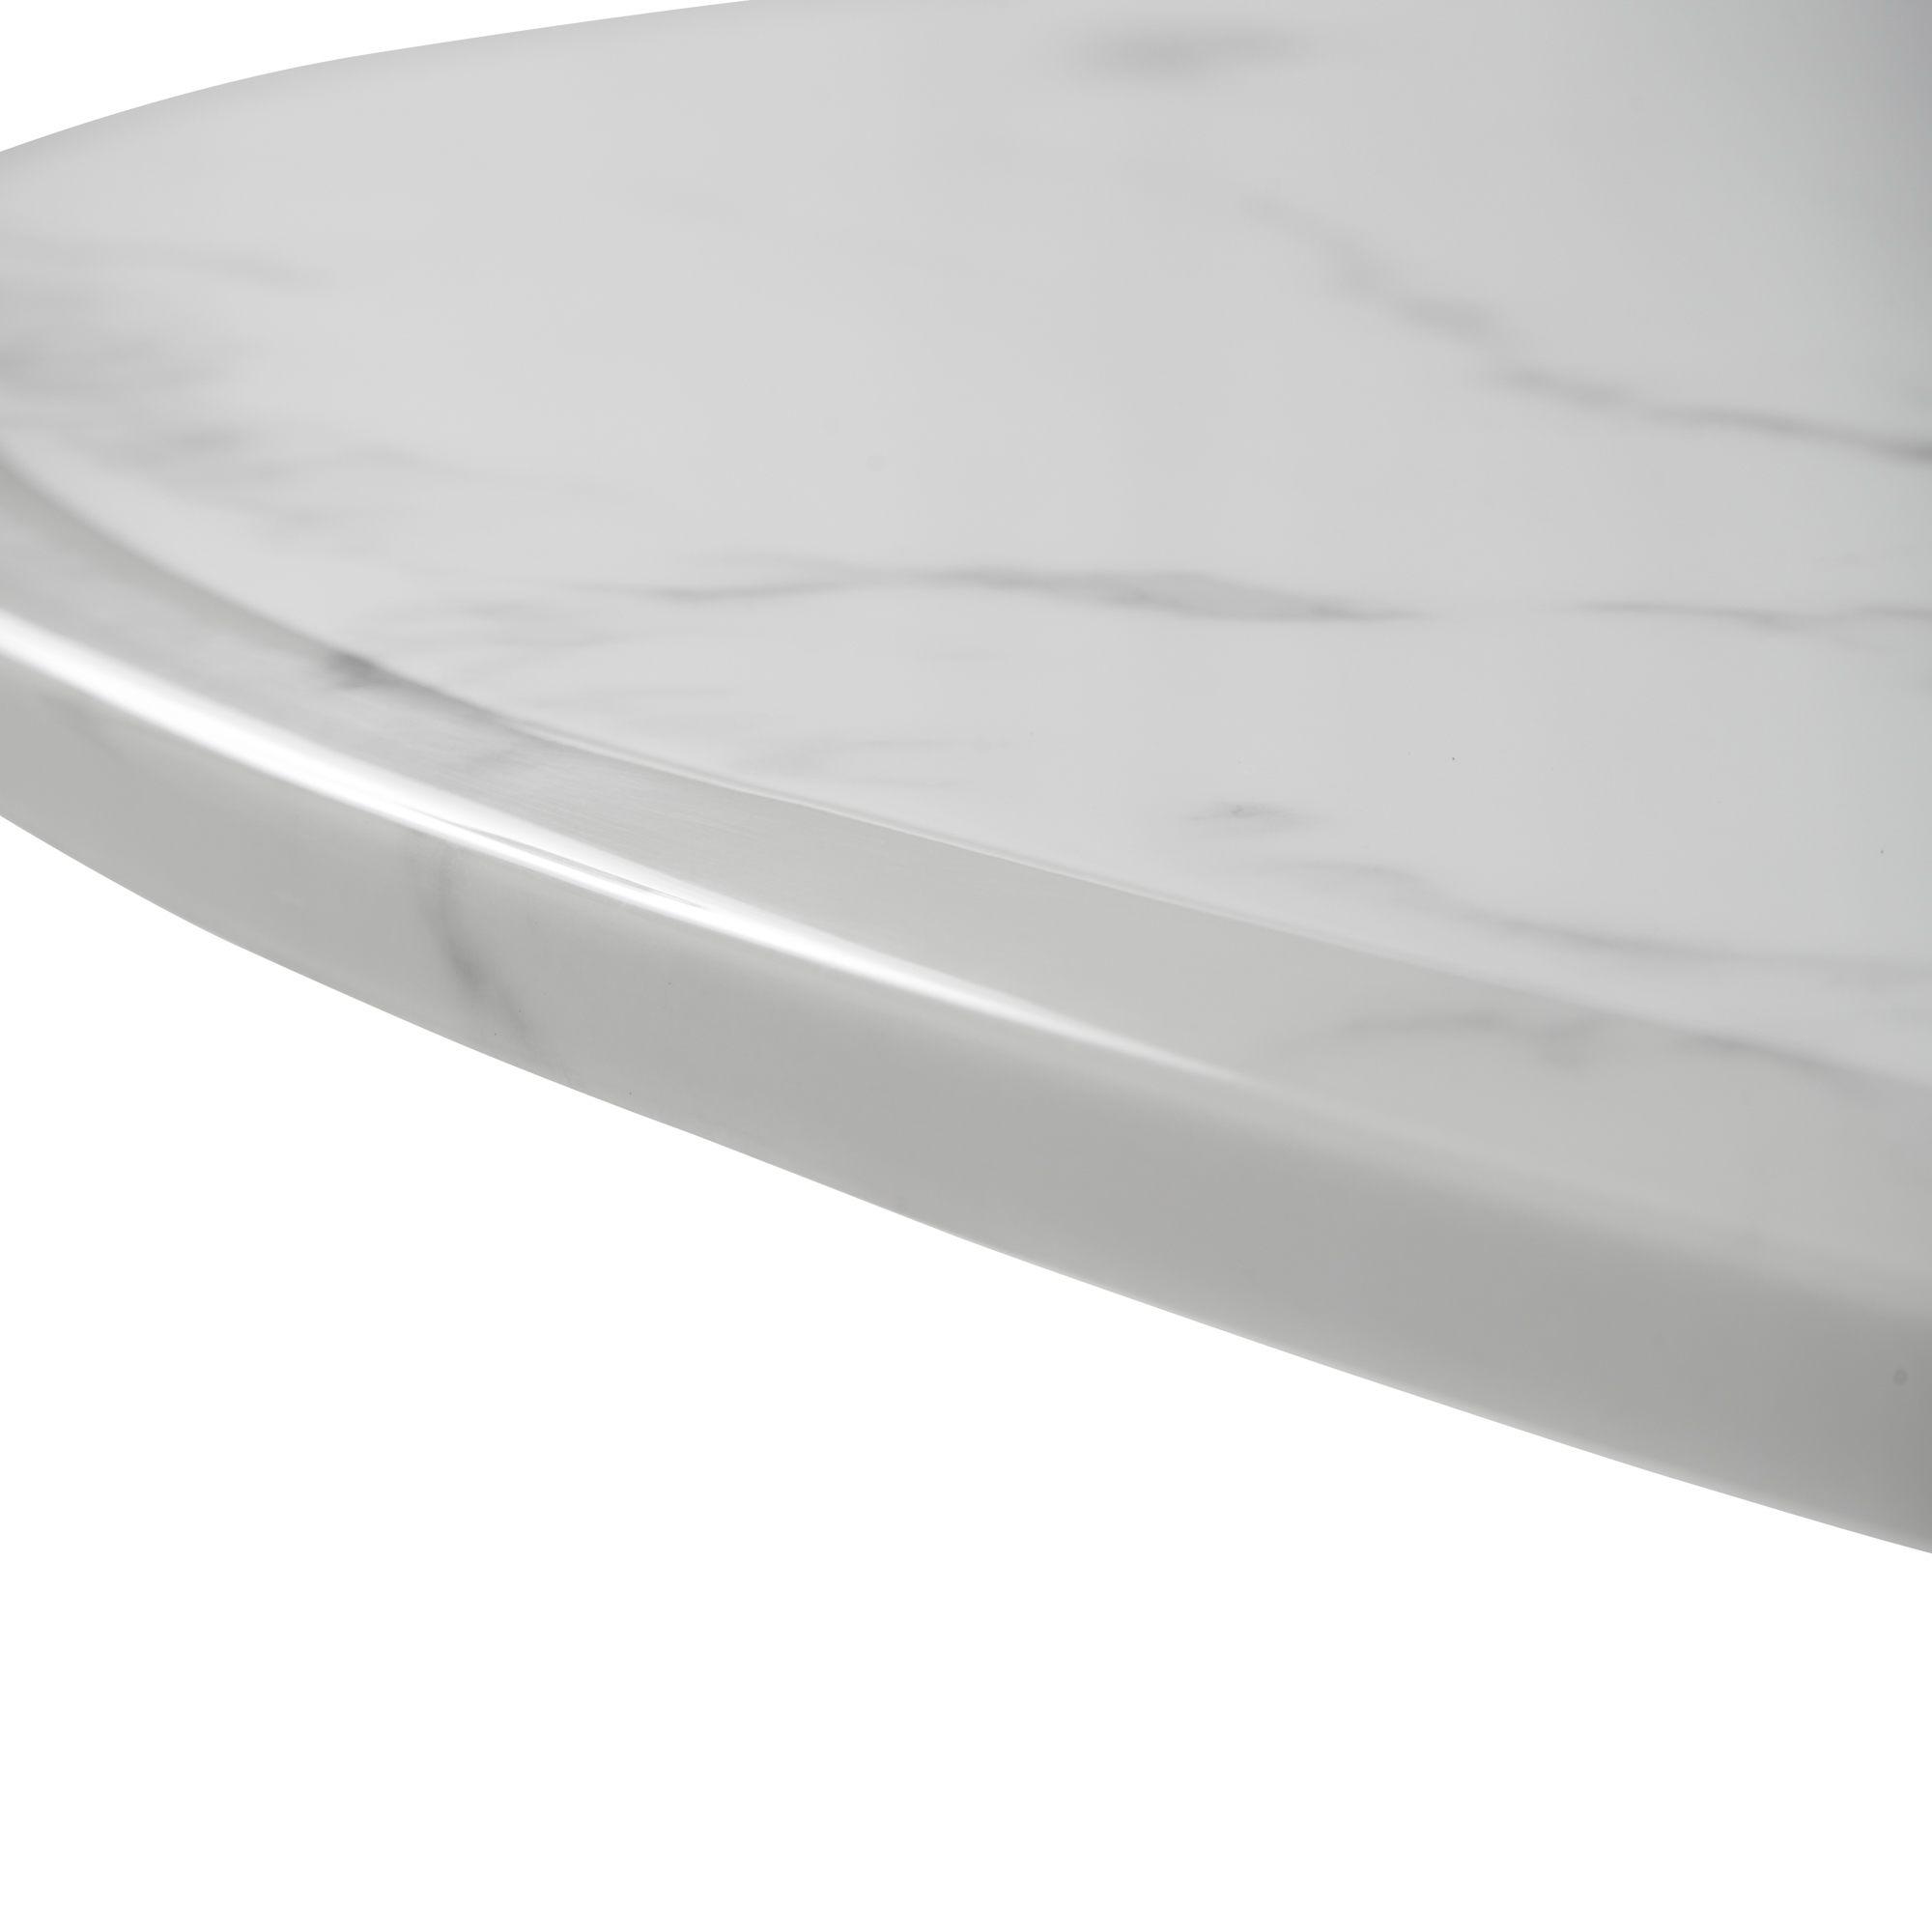 1.3M Pedestal Polished Circular Stainless Steel Dining Table with White Marble Top